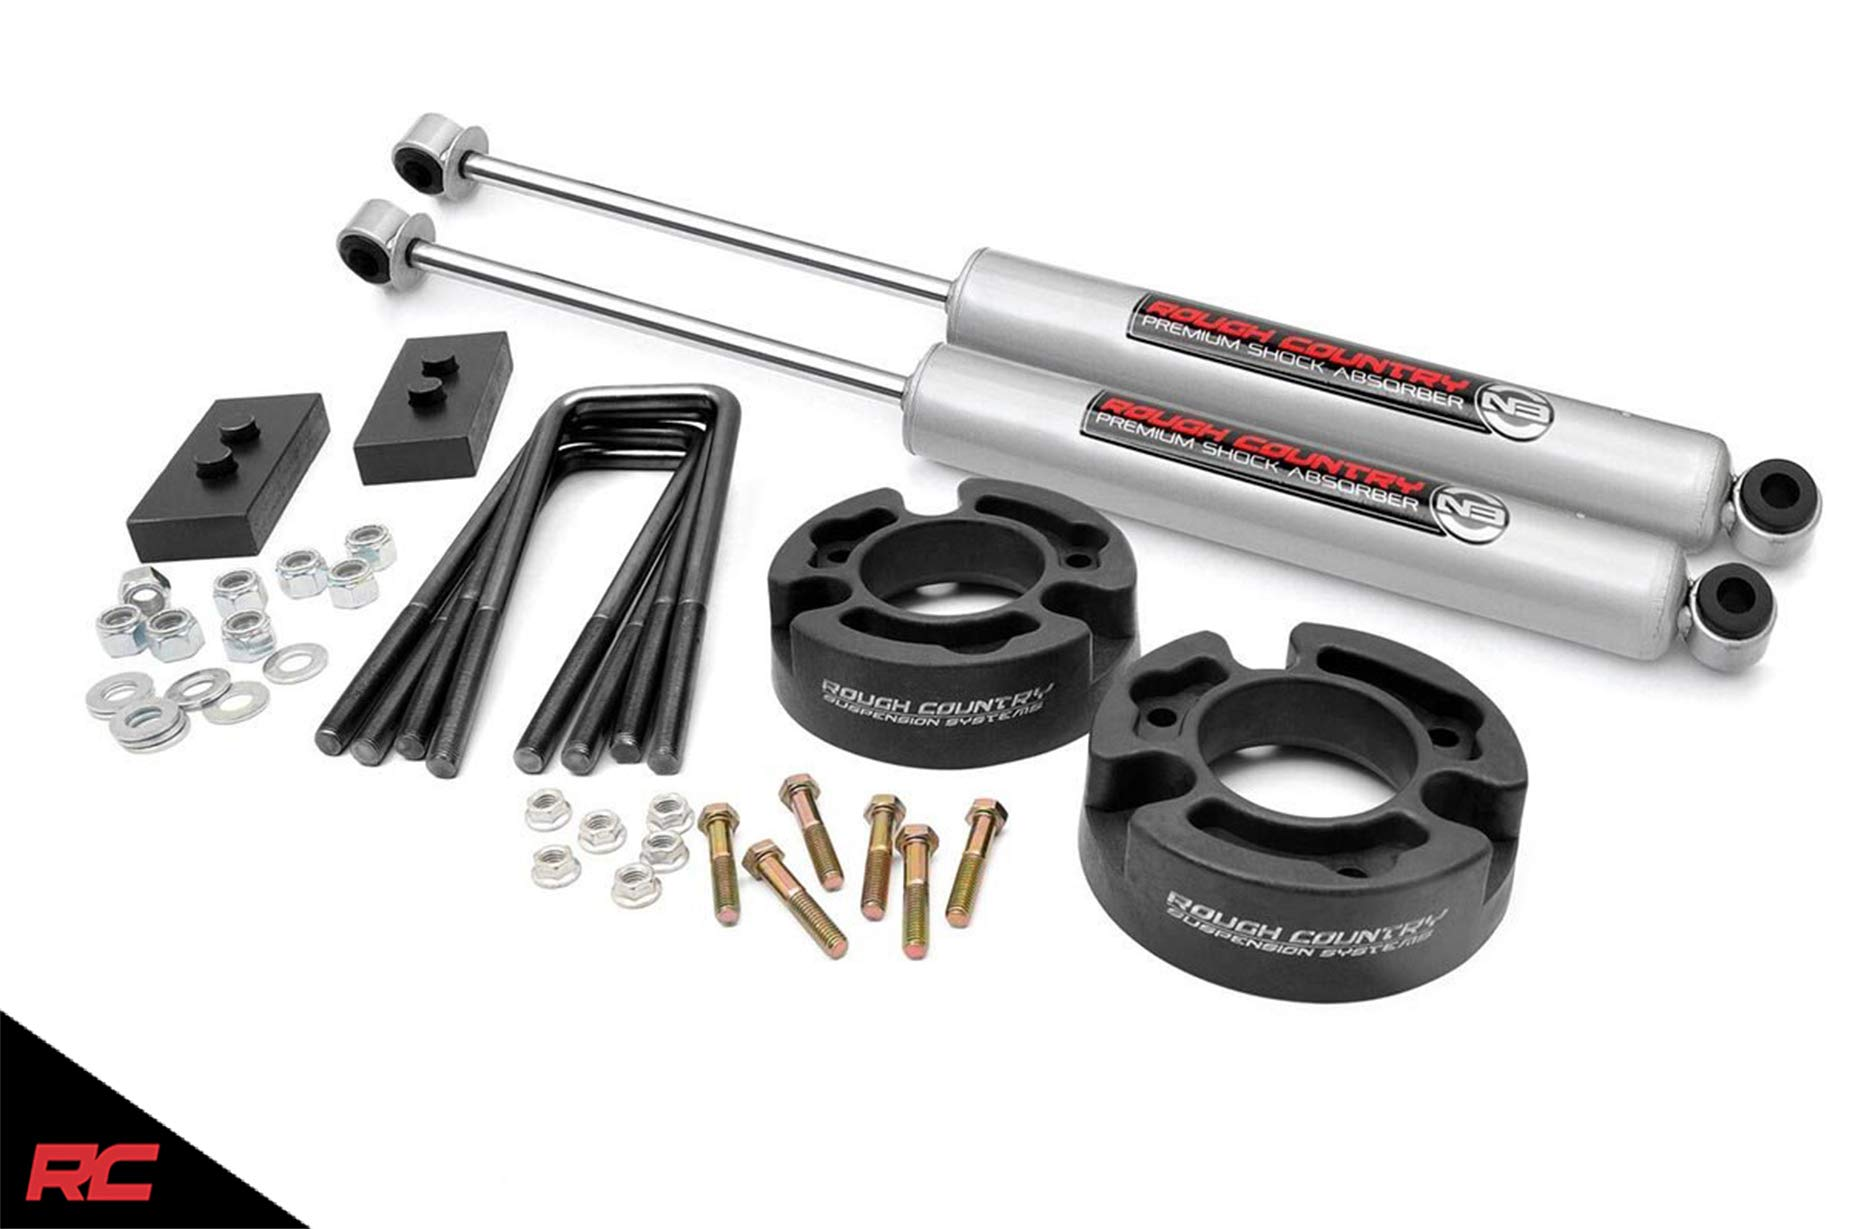 Rough Country 57030 Suspension Leveling